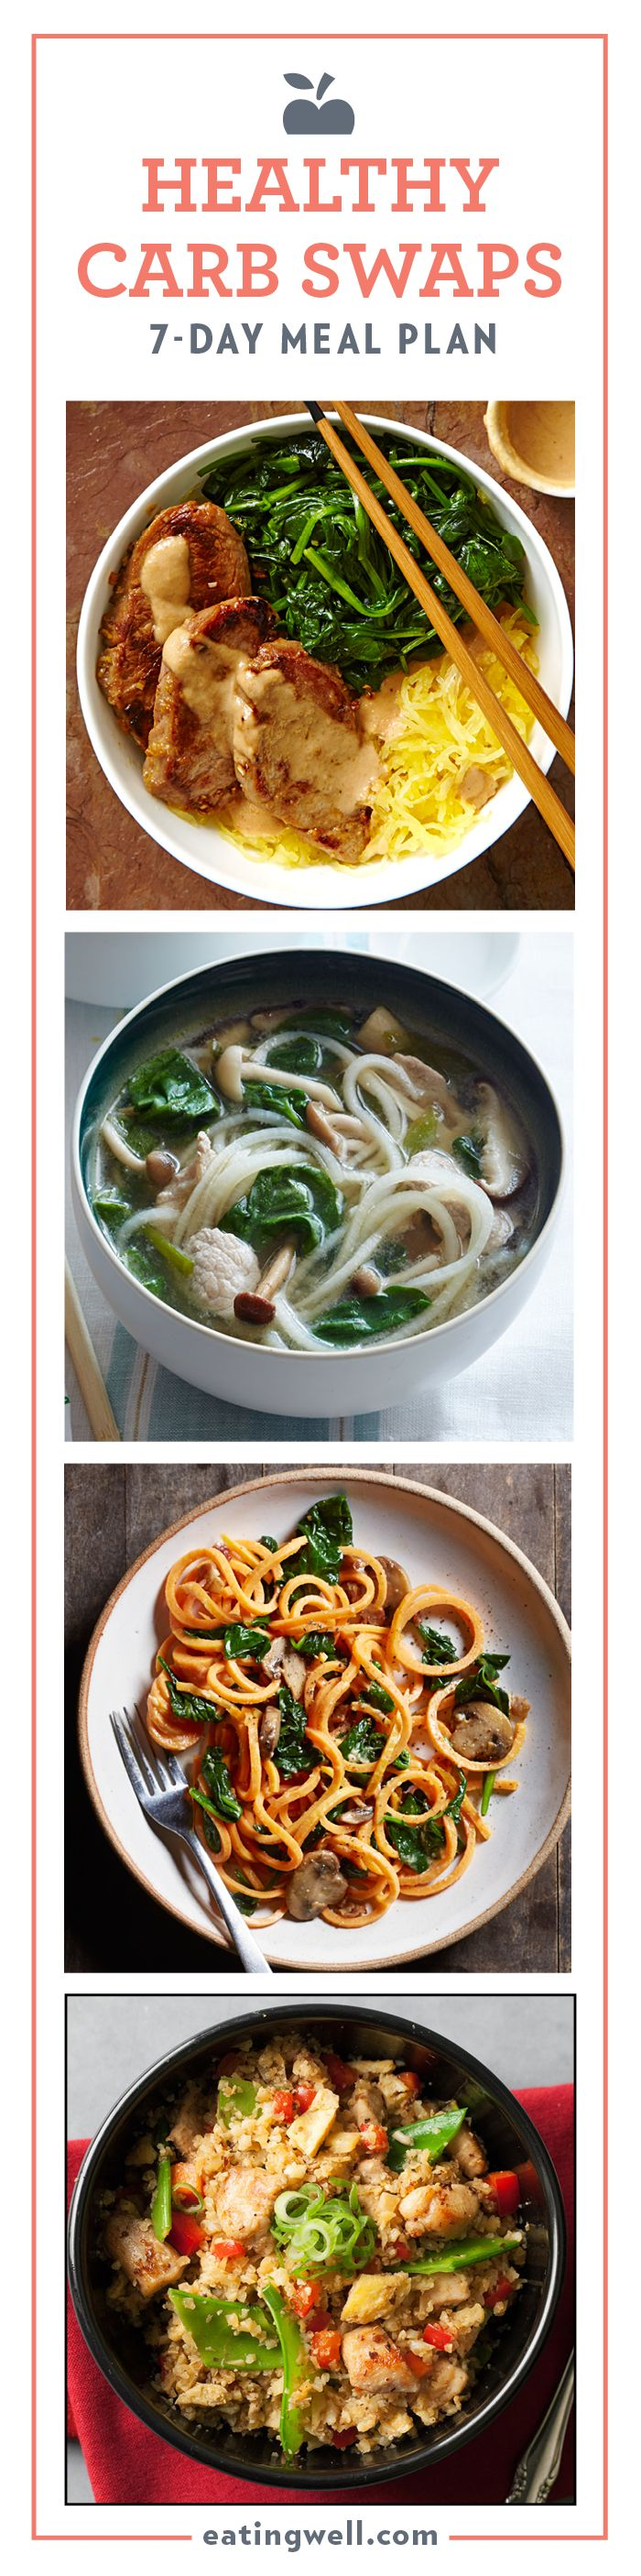 "7-Day Meal Plan: Healthy Carb Swaps | The recipes in this plan feature healthy carb swaps, like spaghetti squash as a stand in for rice noodles, ""spiralized"" sweet potato in place of pasta, and cauliflower as an alternative to fried rice."